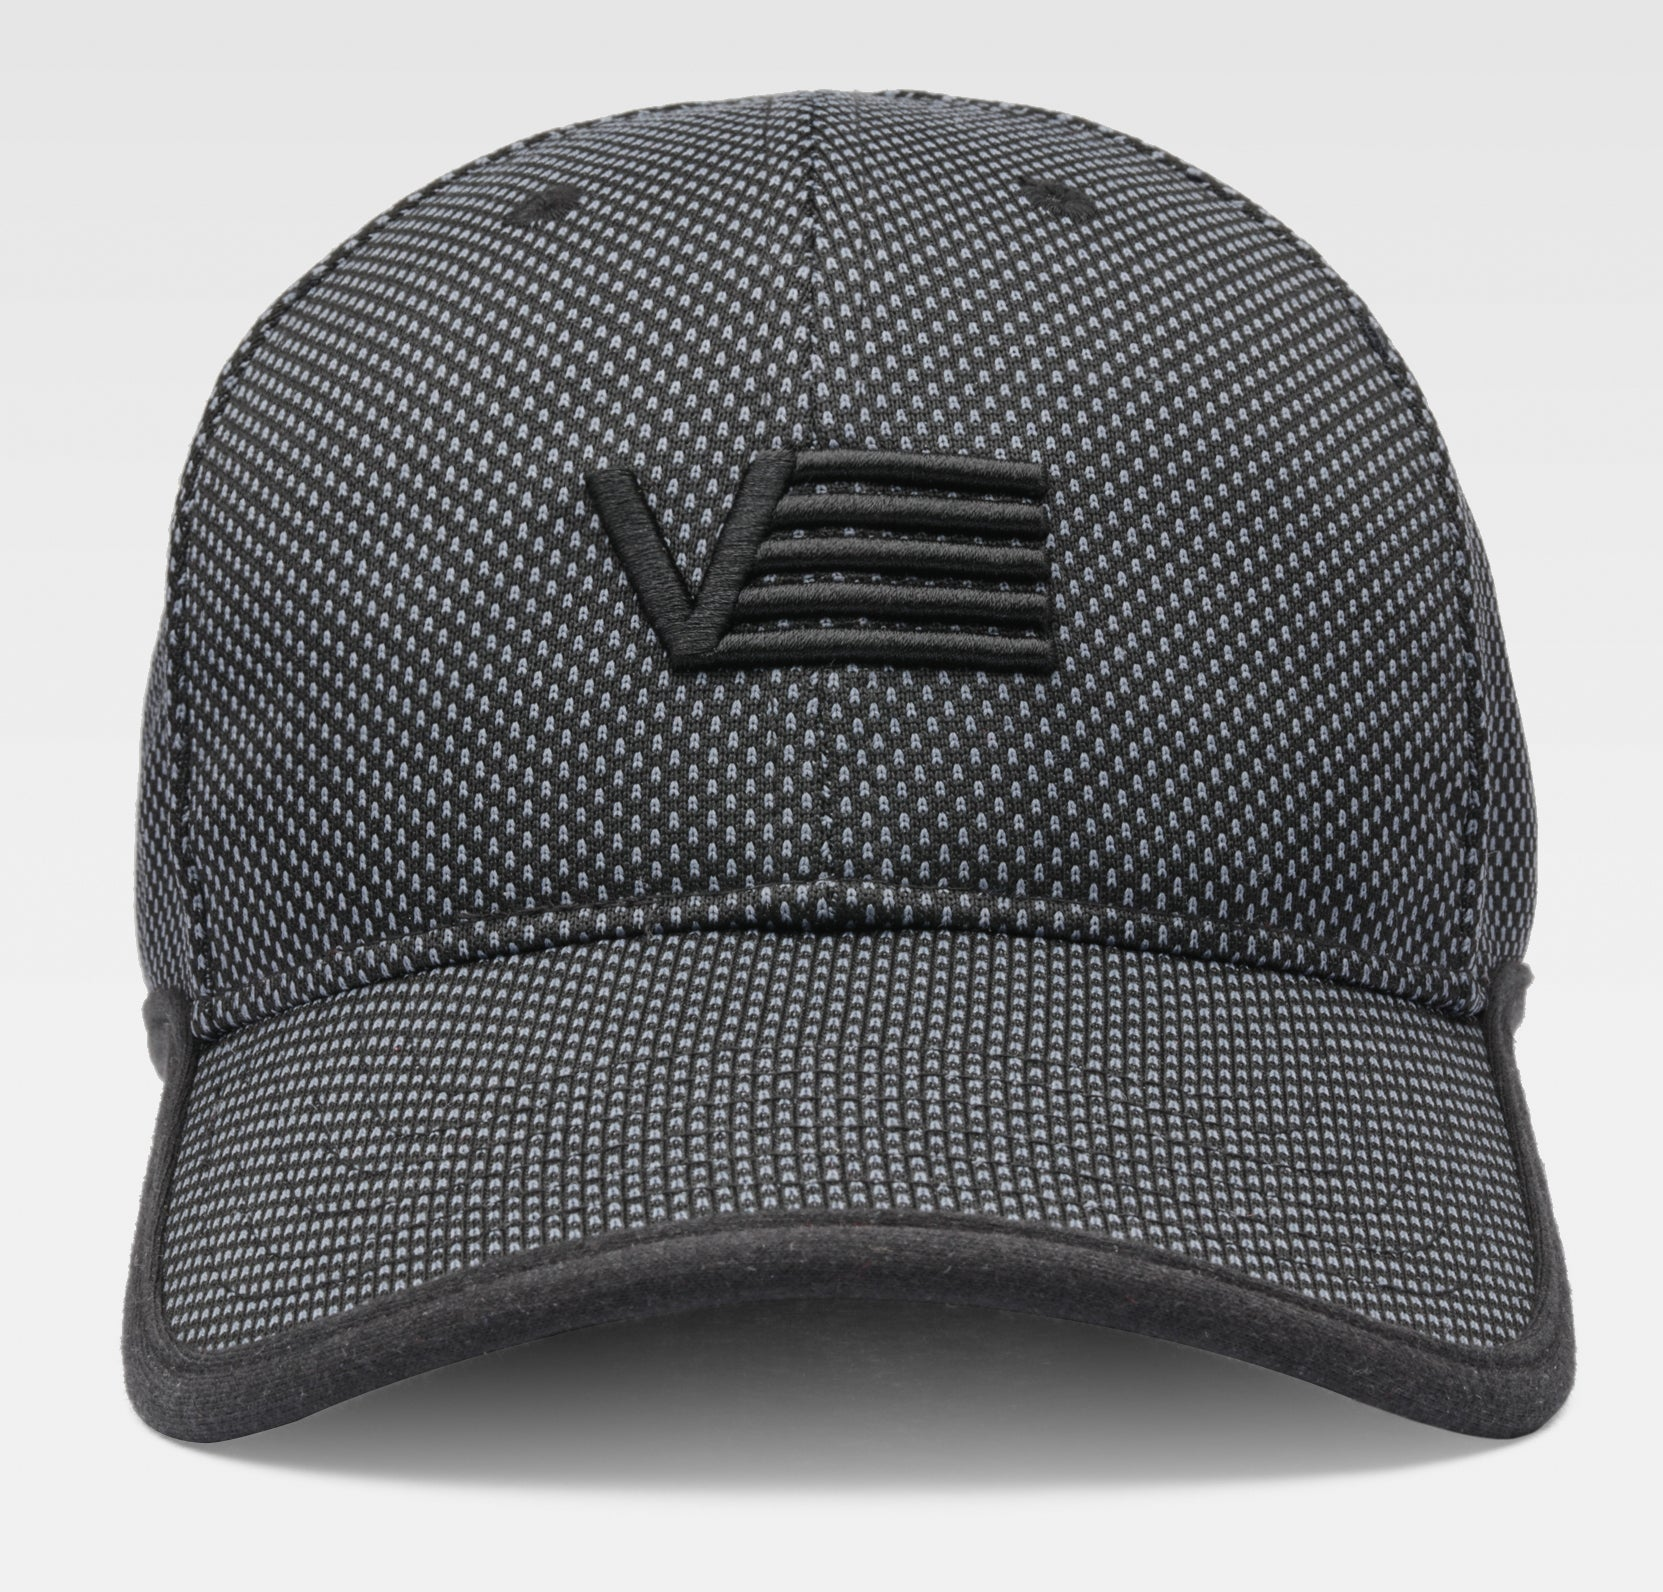 Charcoal cap with embroidered logo